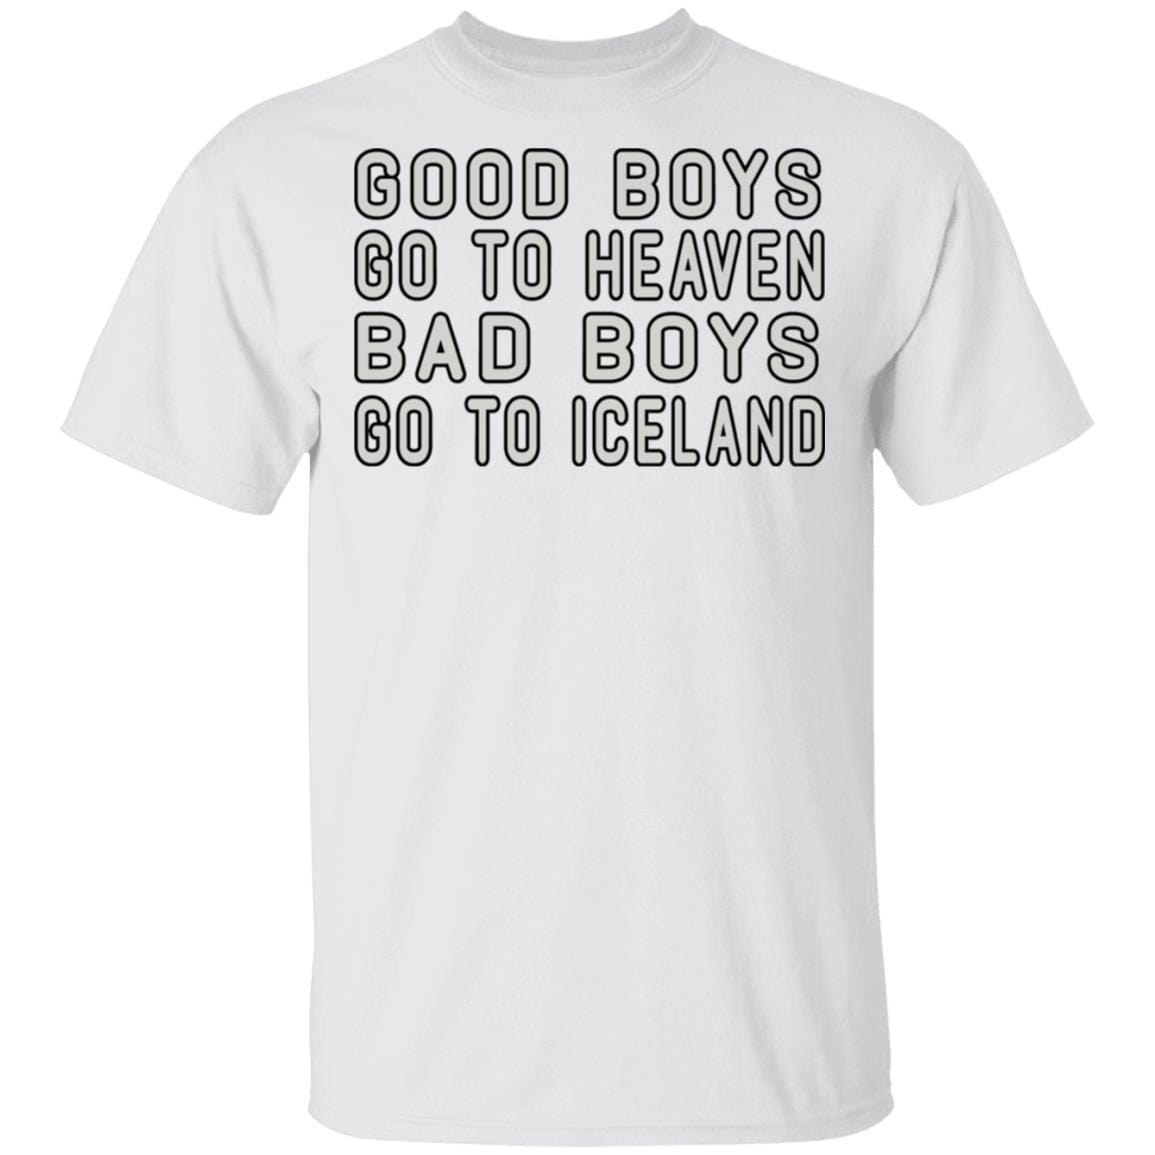 Good Boys Go To Heaven Bad Boys Go To Iceland T-Shirts, Hoodies 1049-9974-87283700-48300 - Tee Ript